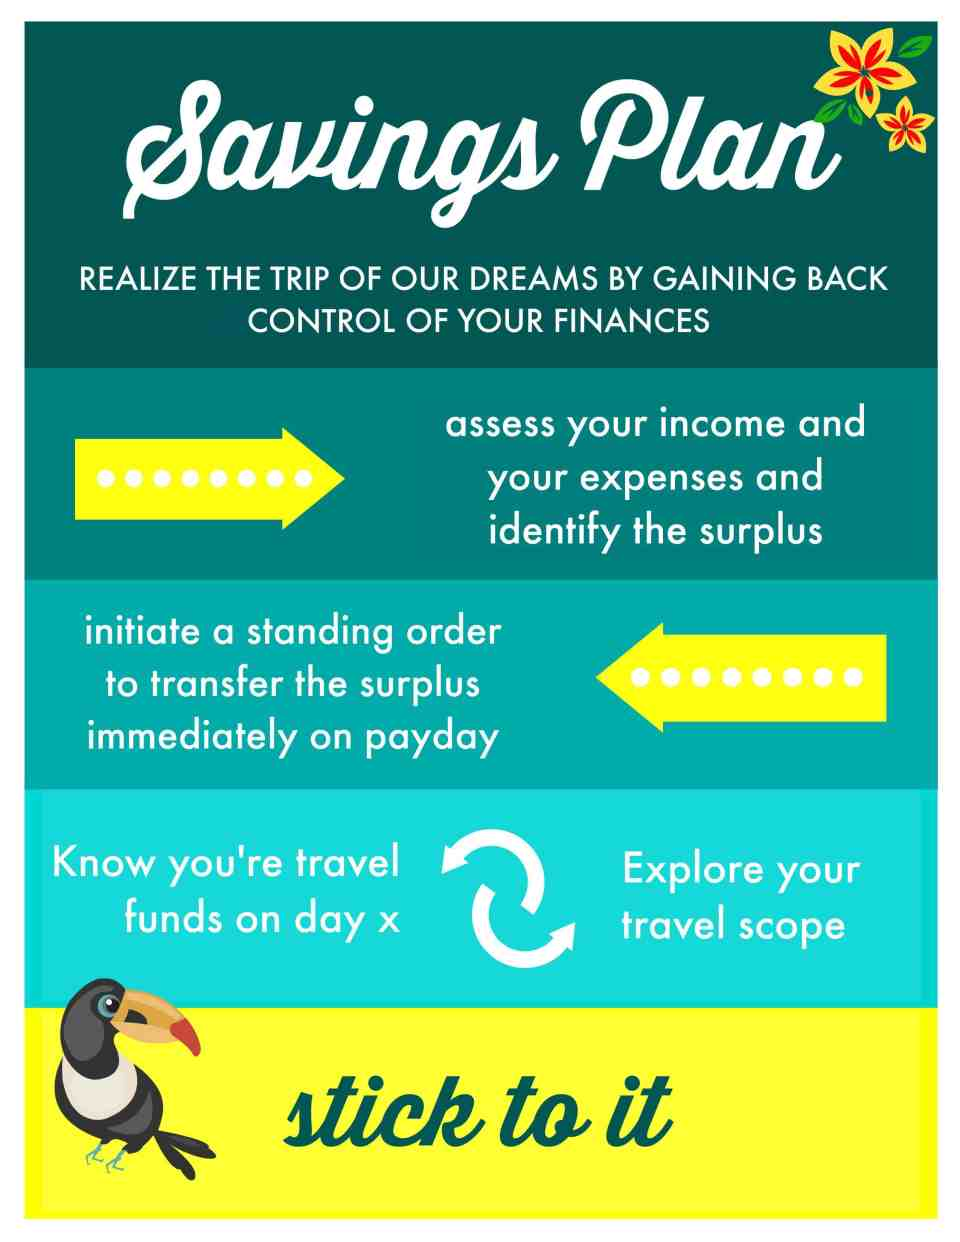 Follow this easy roadmap to earn how to create a simple saving and budget plan. Know how much you will be able to save up for your next trip